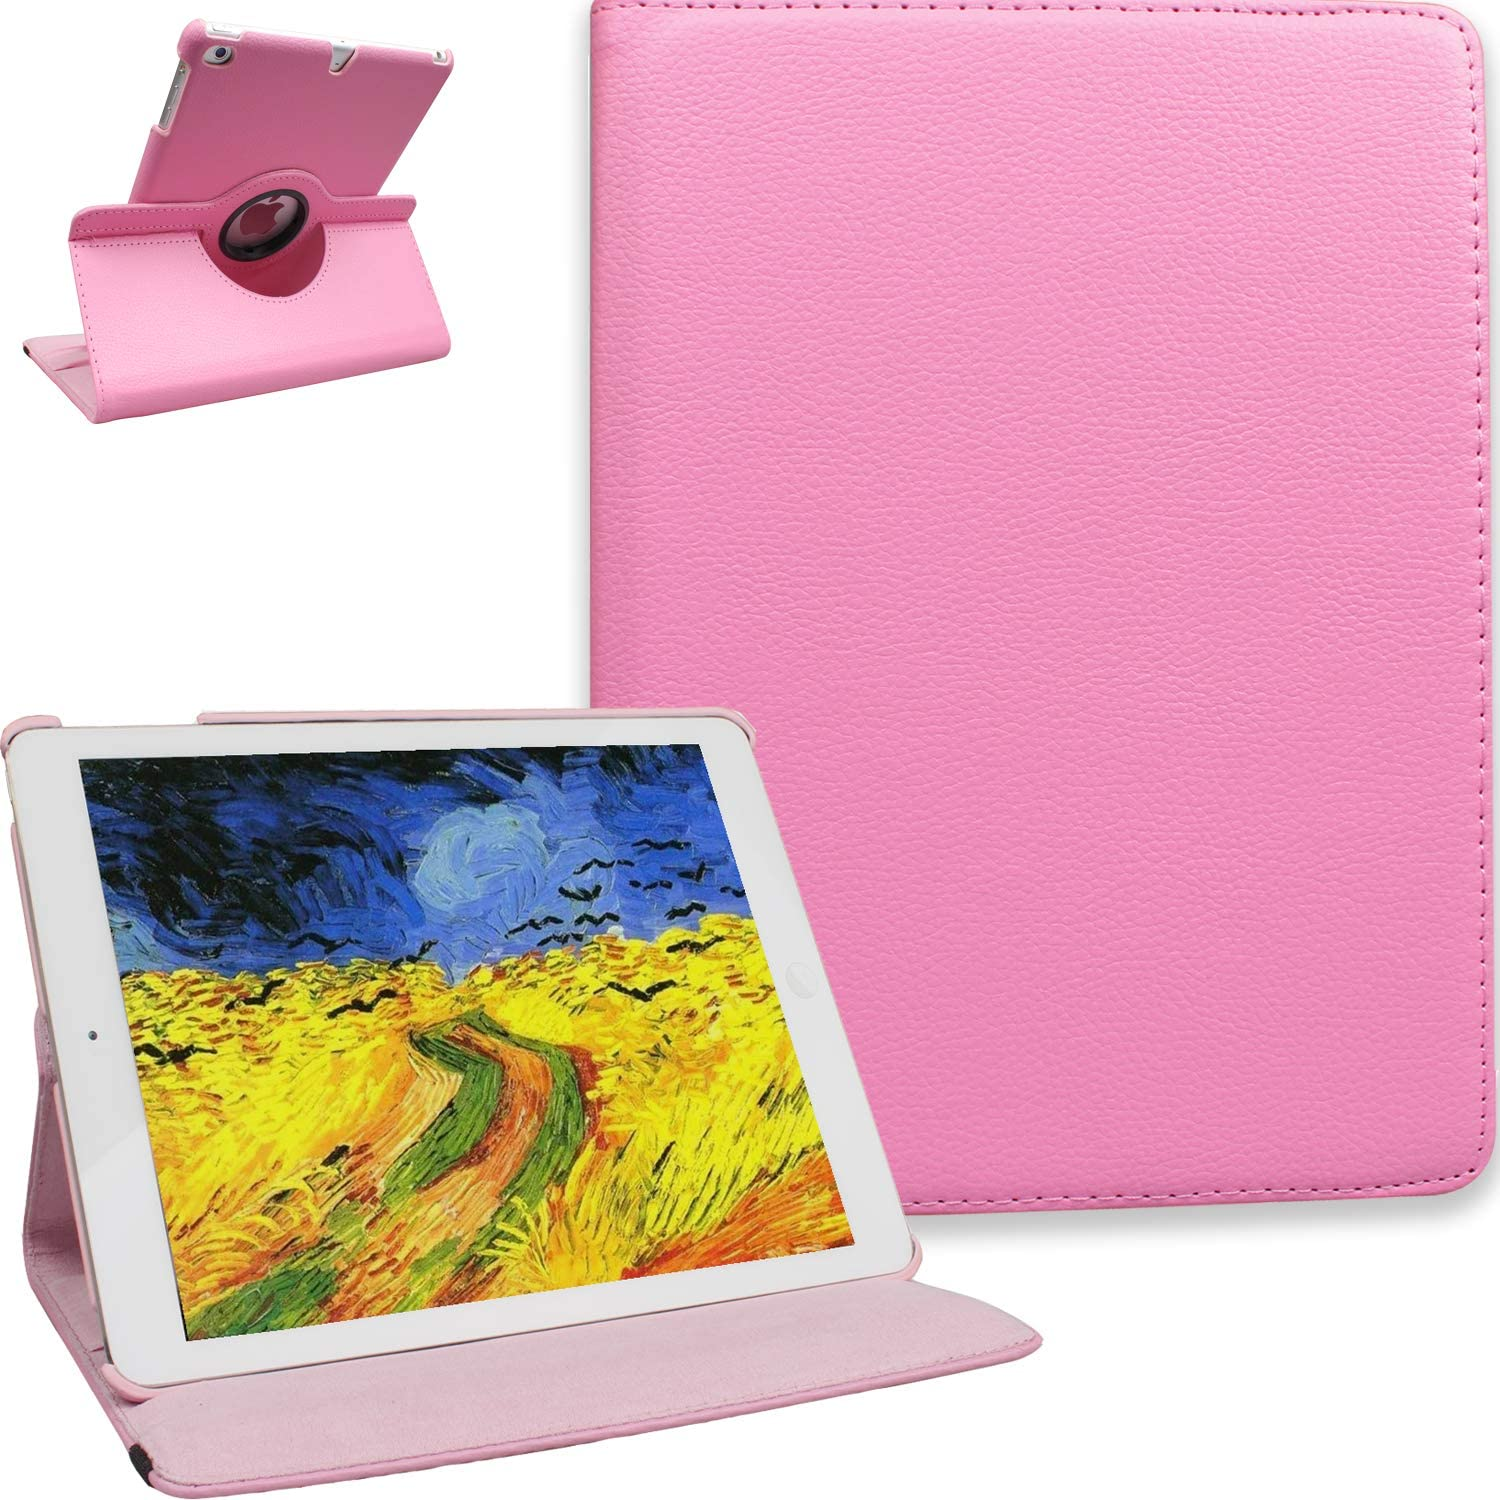 NEWQIANG iPad 5th 6th Generation Case with Bonus Screen Protector - iPad 9.7 inch Air1 2018 2017 Cover - Screen Protector, 360 Degree Rotating Stand, Auto Sleep Wake, Shockproof, (Pink)